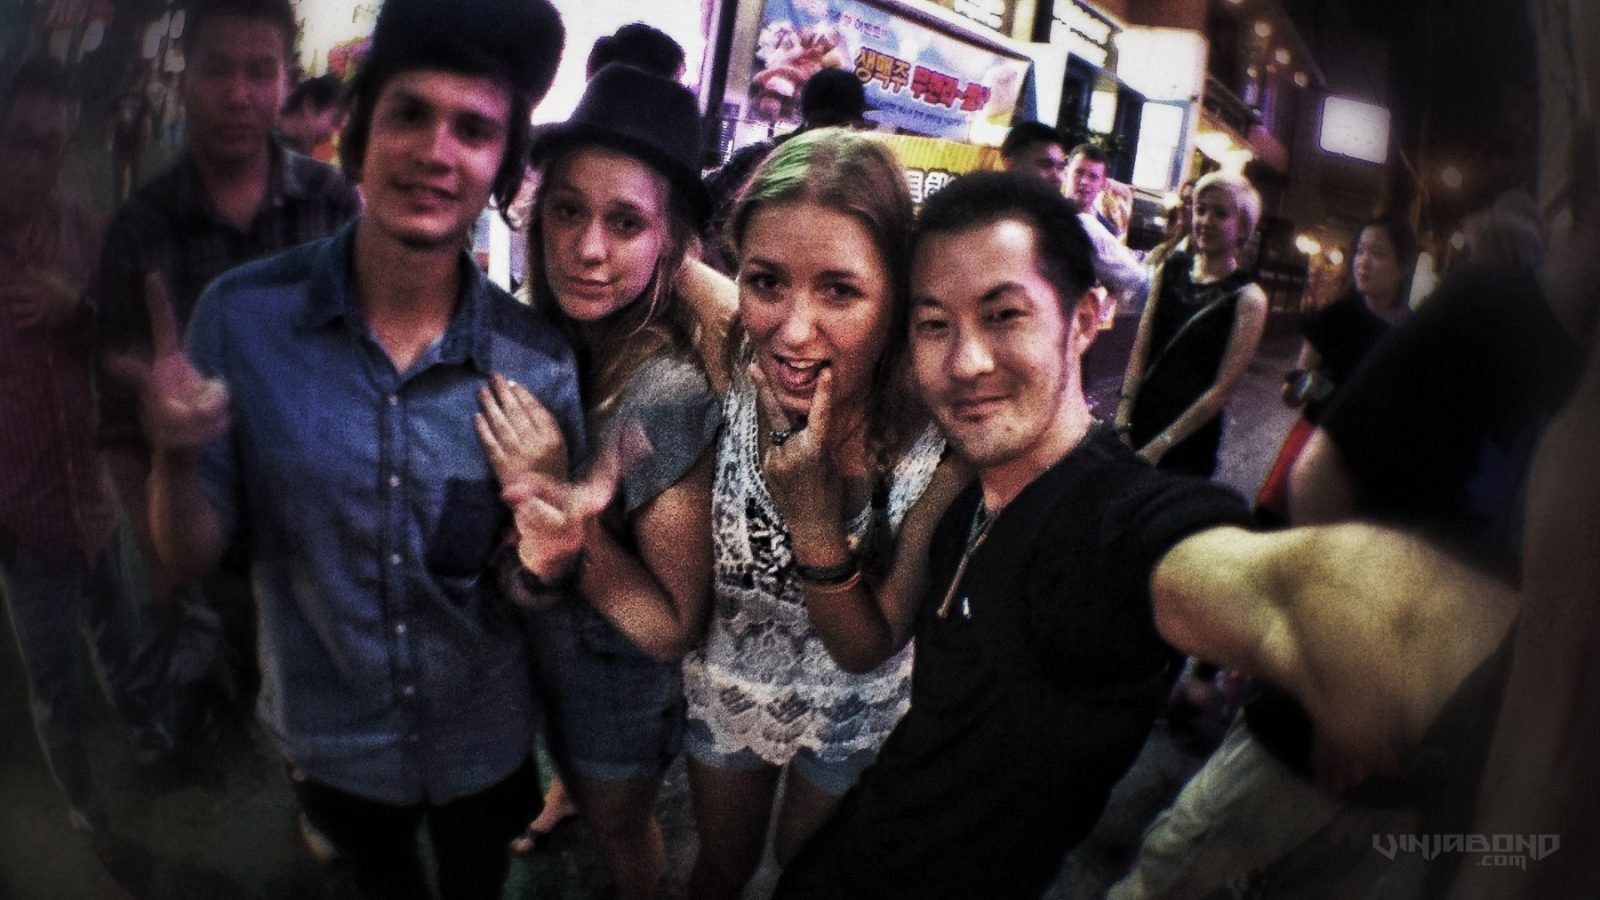 - Partying w/ Czech Models at Hongdae Club Central - VINJABOND